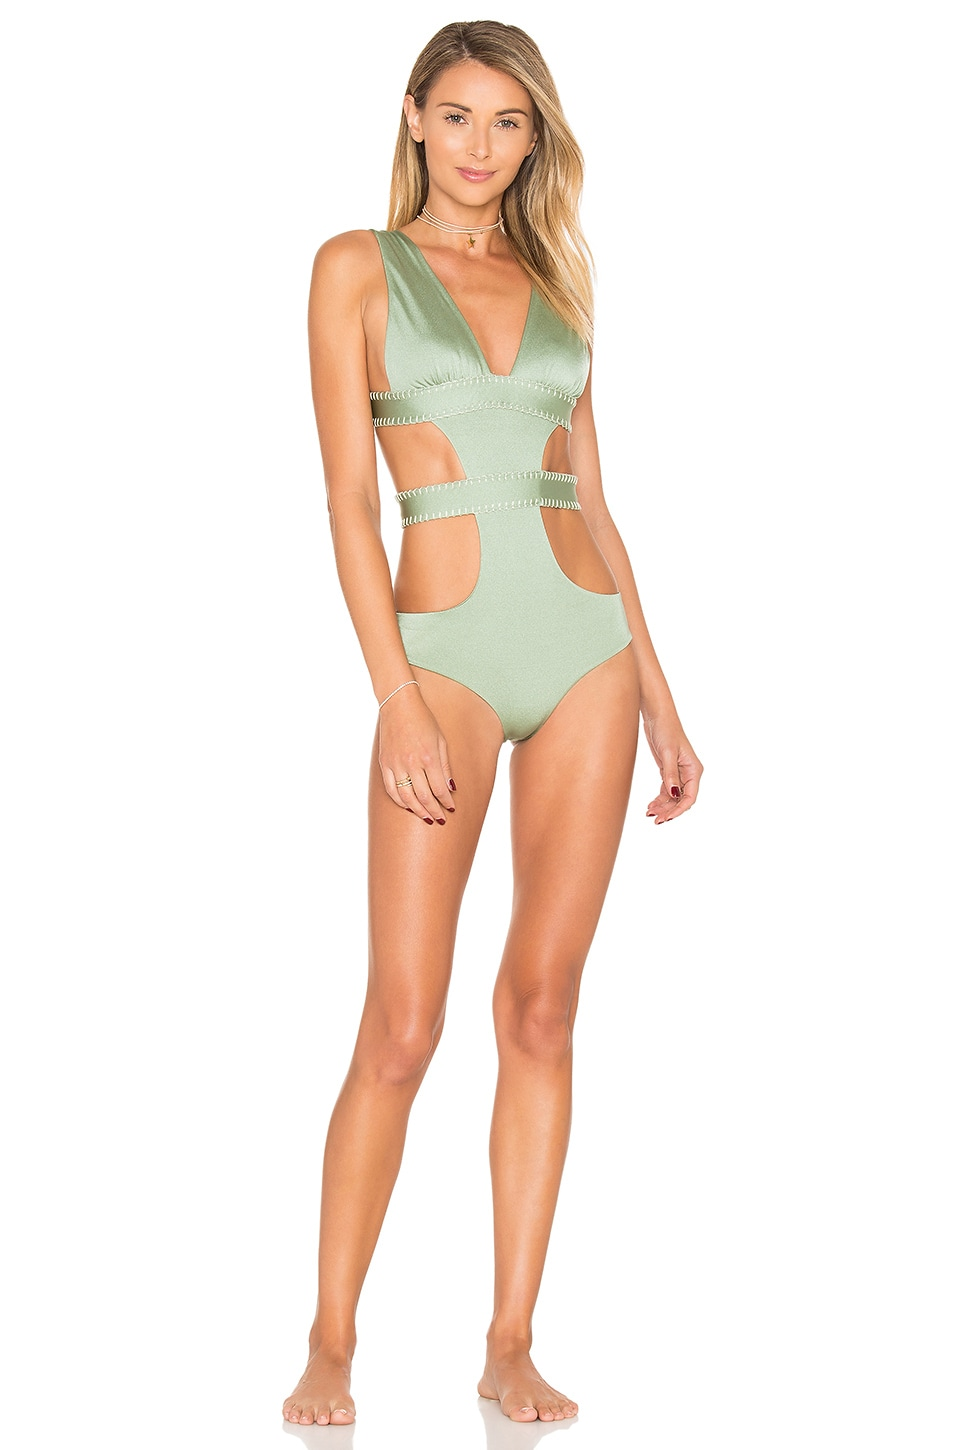 ELLEJAY Amores One Piece in Sea Foam